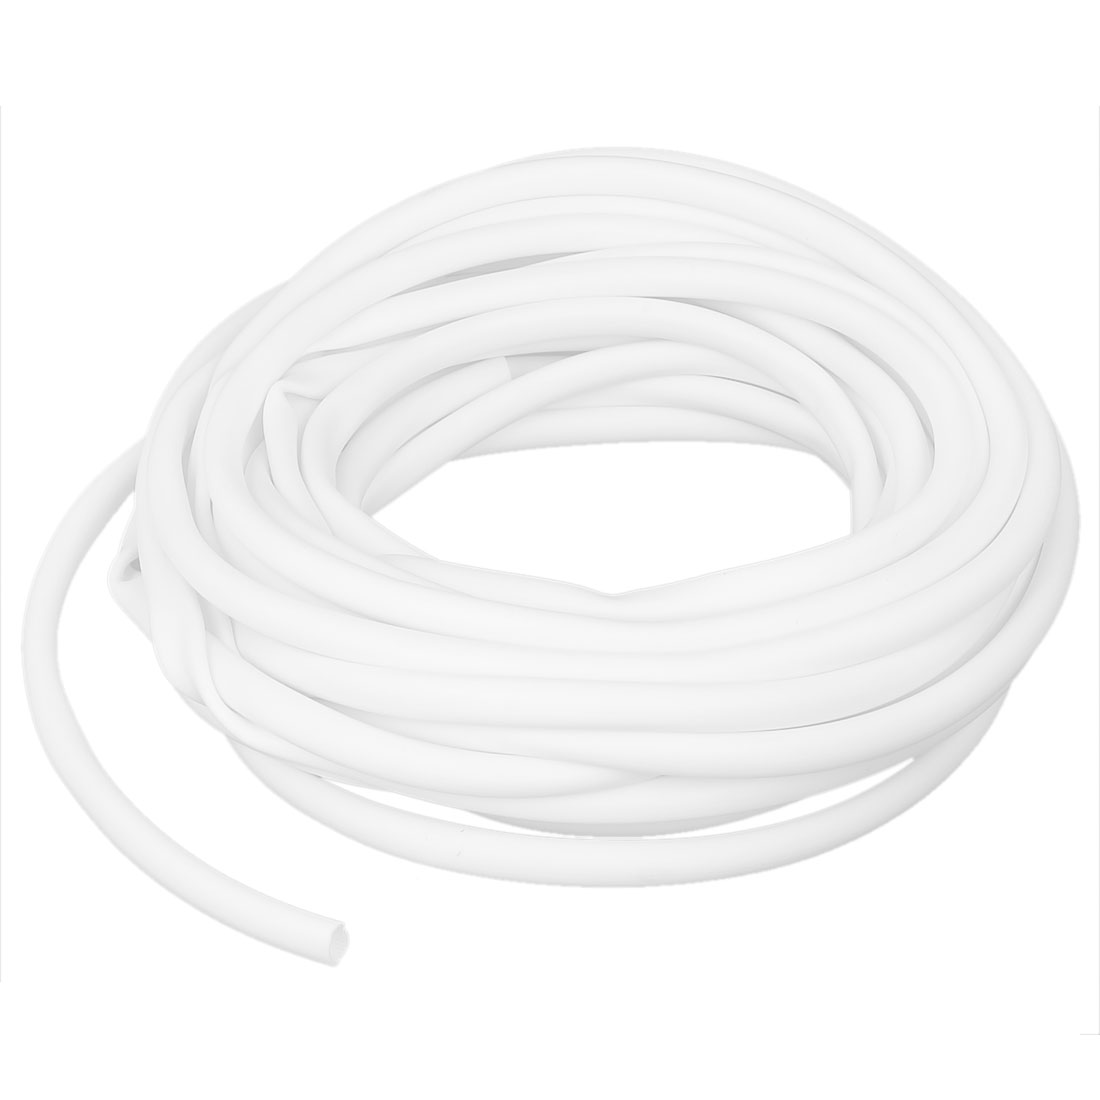 White Protective PVC Marking Tube Sleeve Sleeving 8mm x 8.5m for Cable Wire